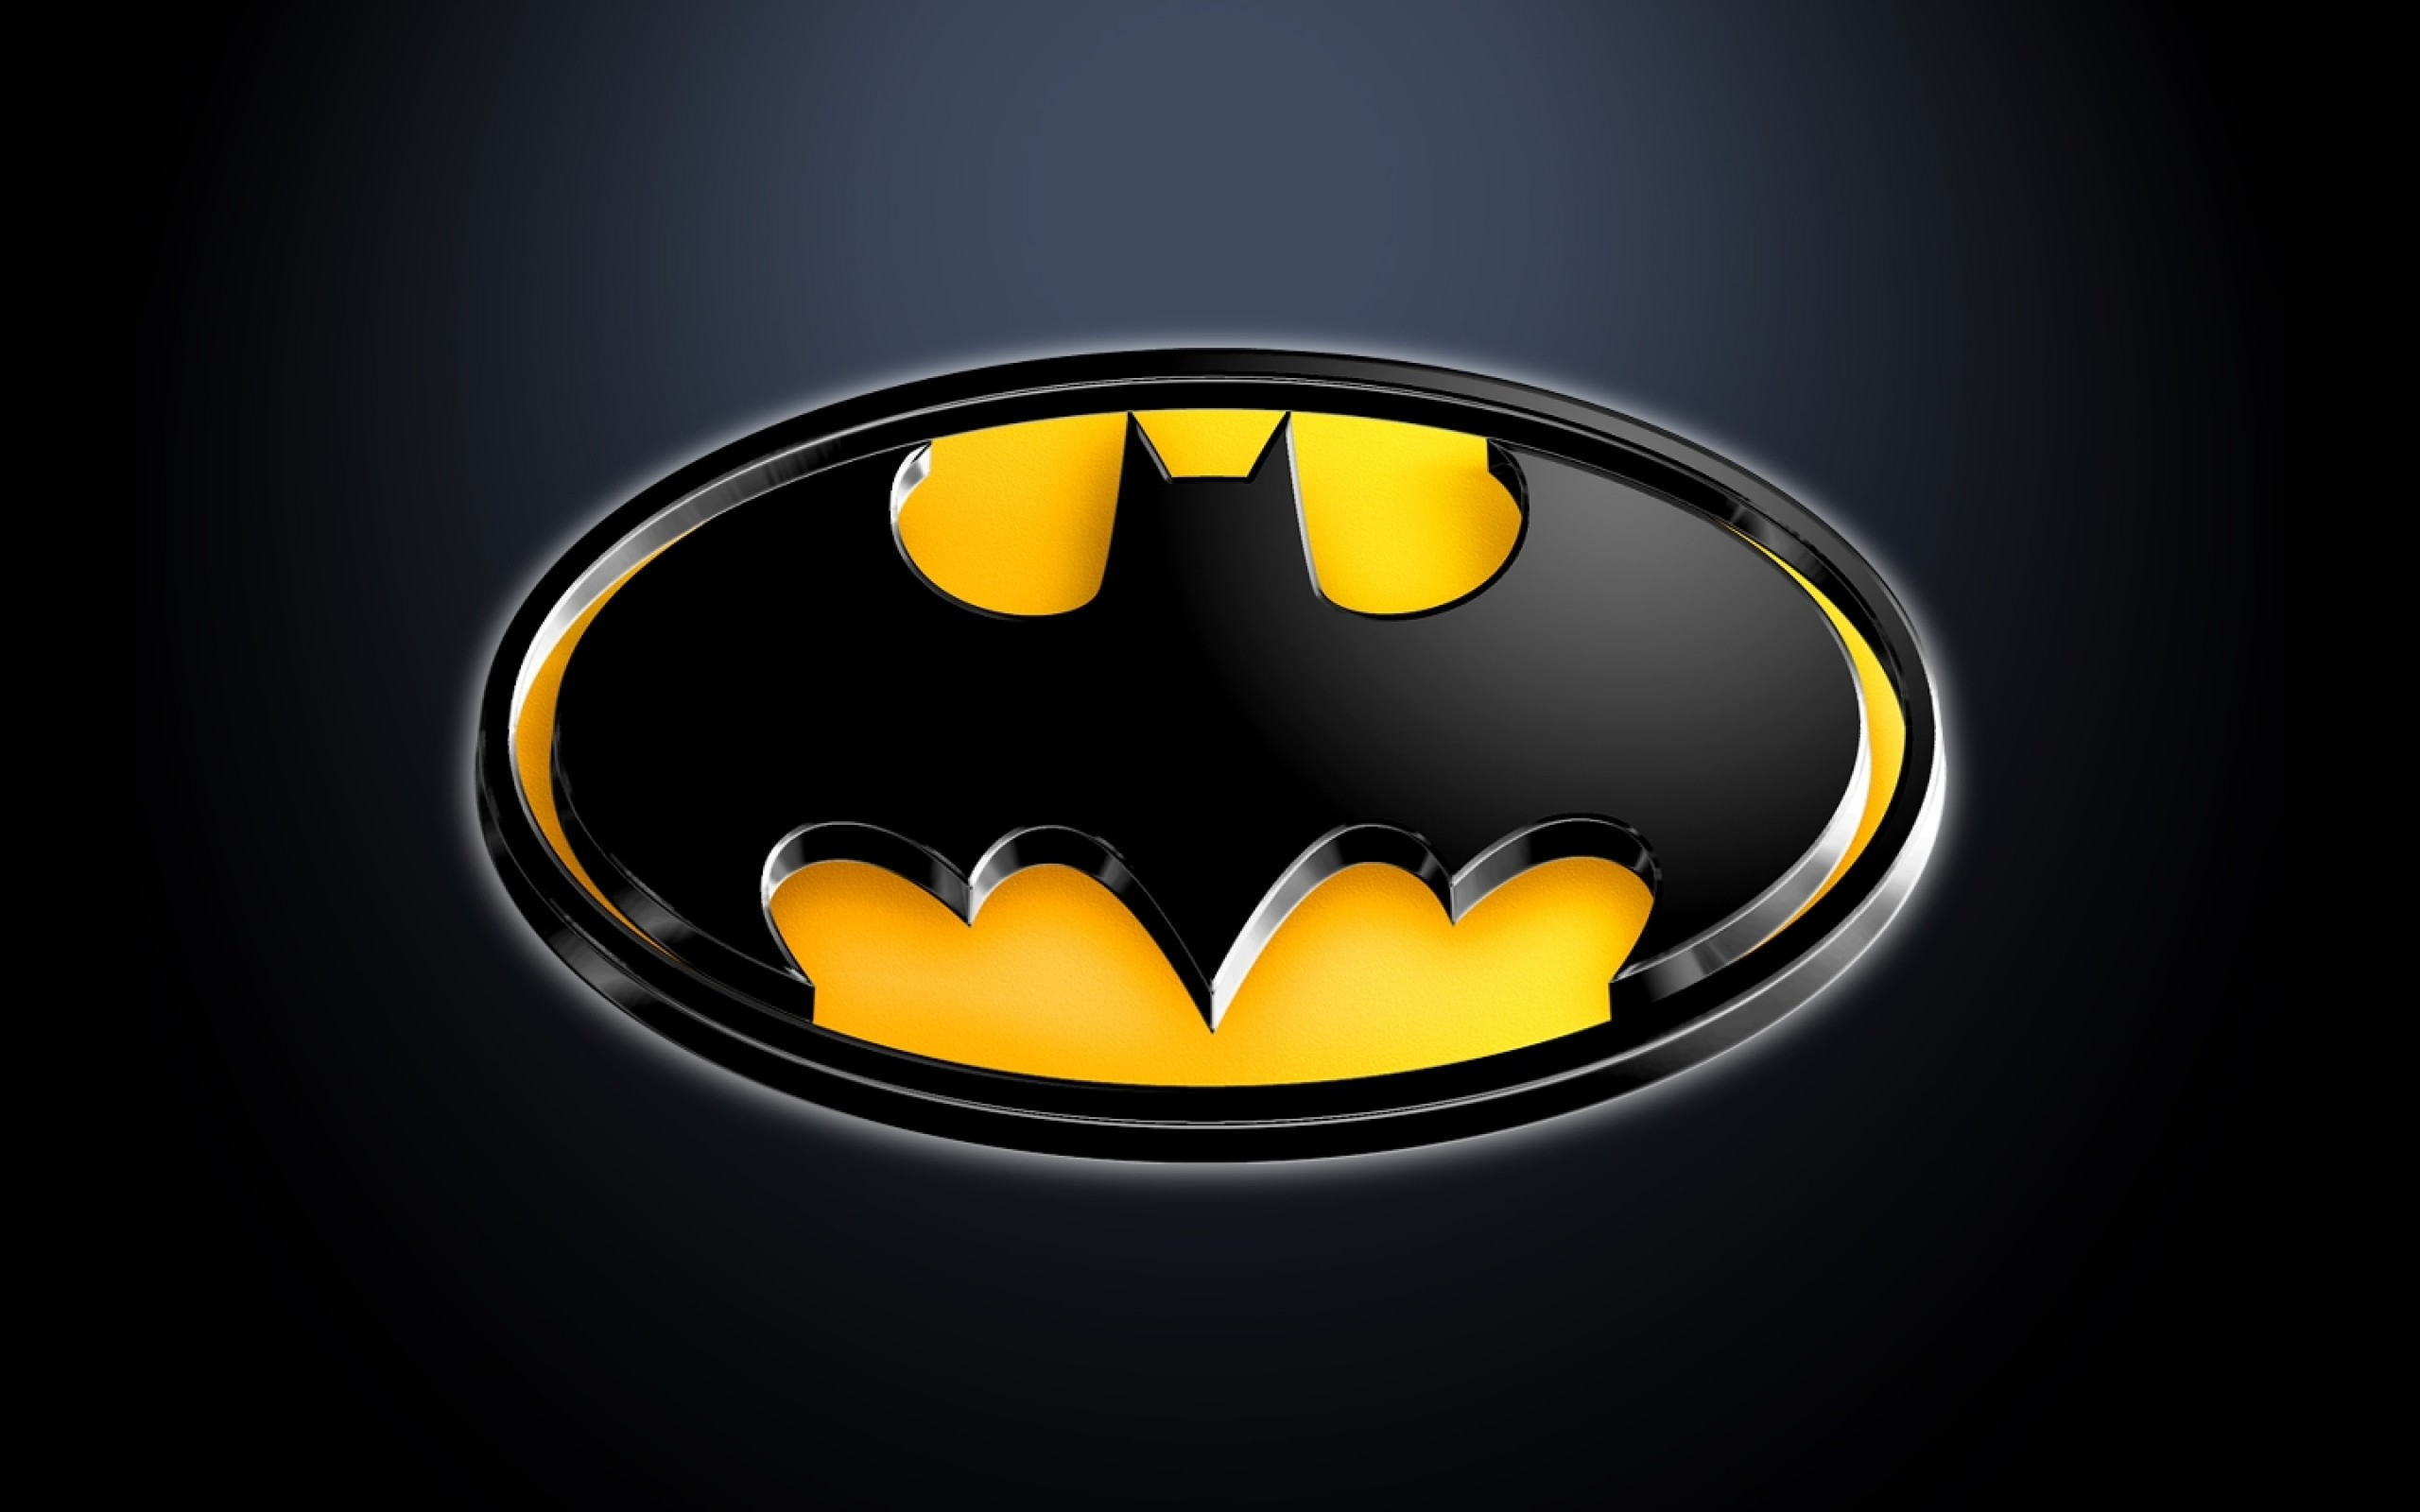 2560x1600 1802 Batman HD Wallpapers | Backgrounds - Wallpaper Abyss - Page 4